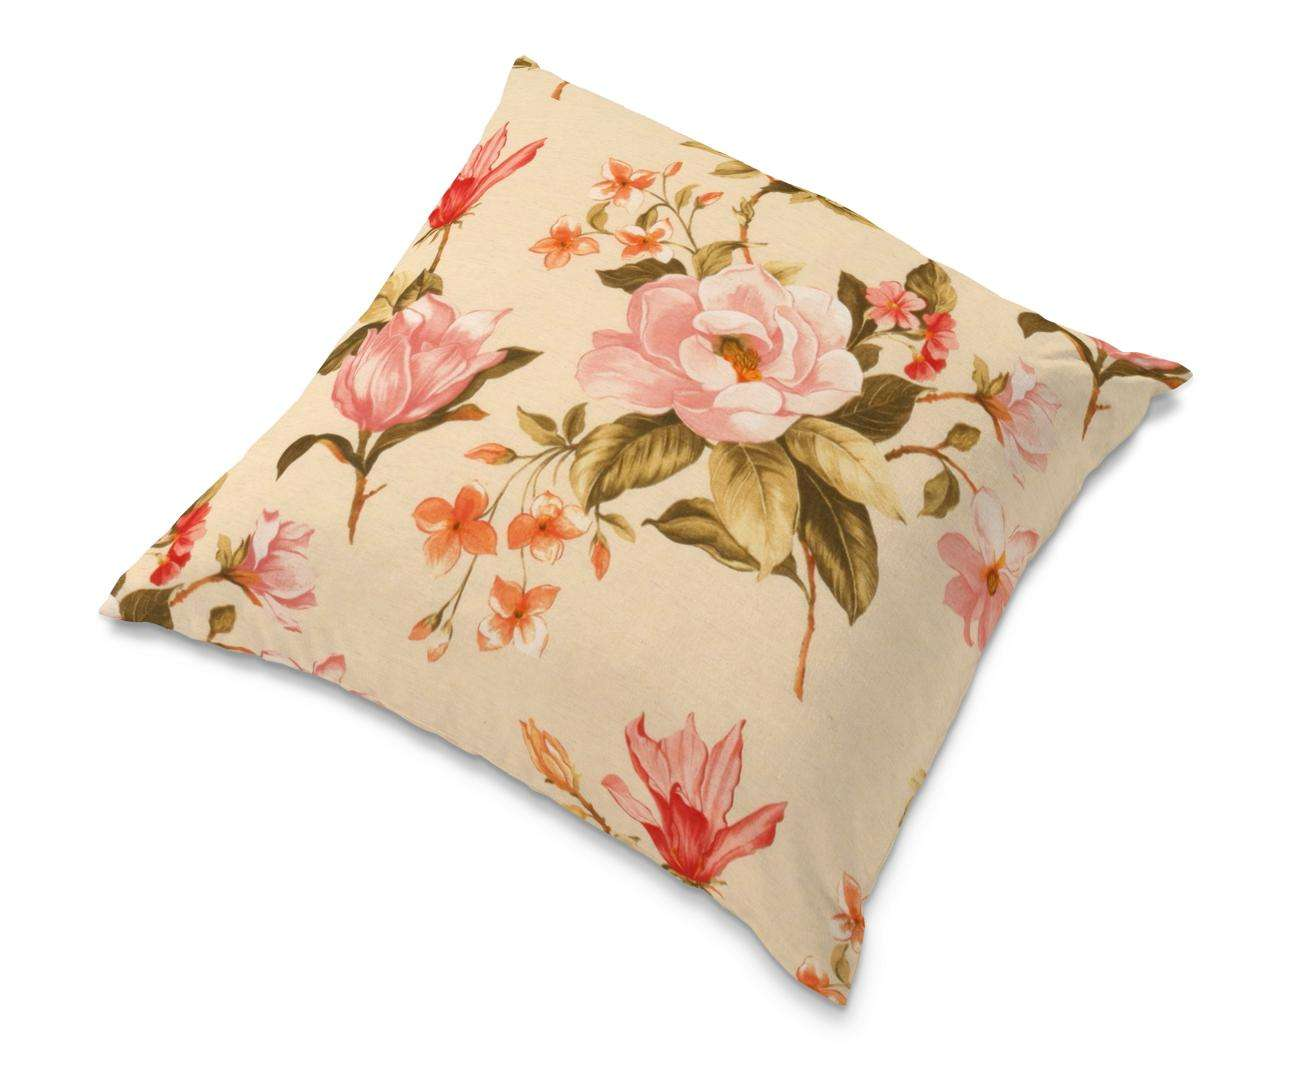 Tomelilla cushion cover 55 x 55 cm (22 x 22 inch) in collection Londres, fabric: 123-05